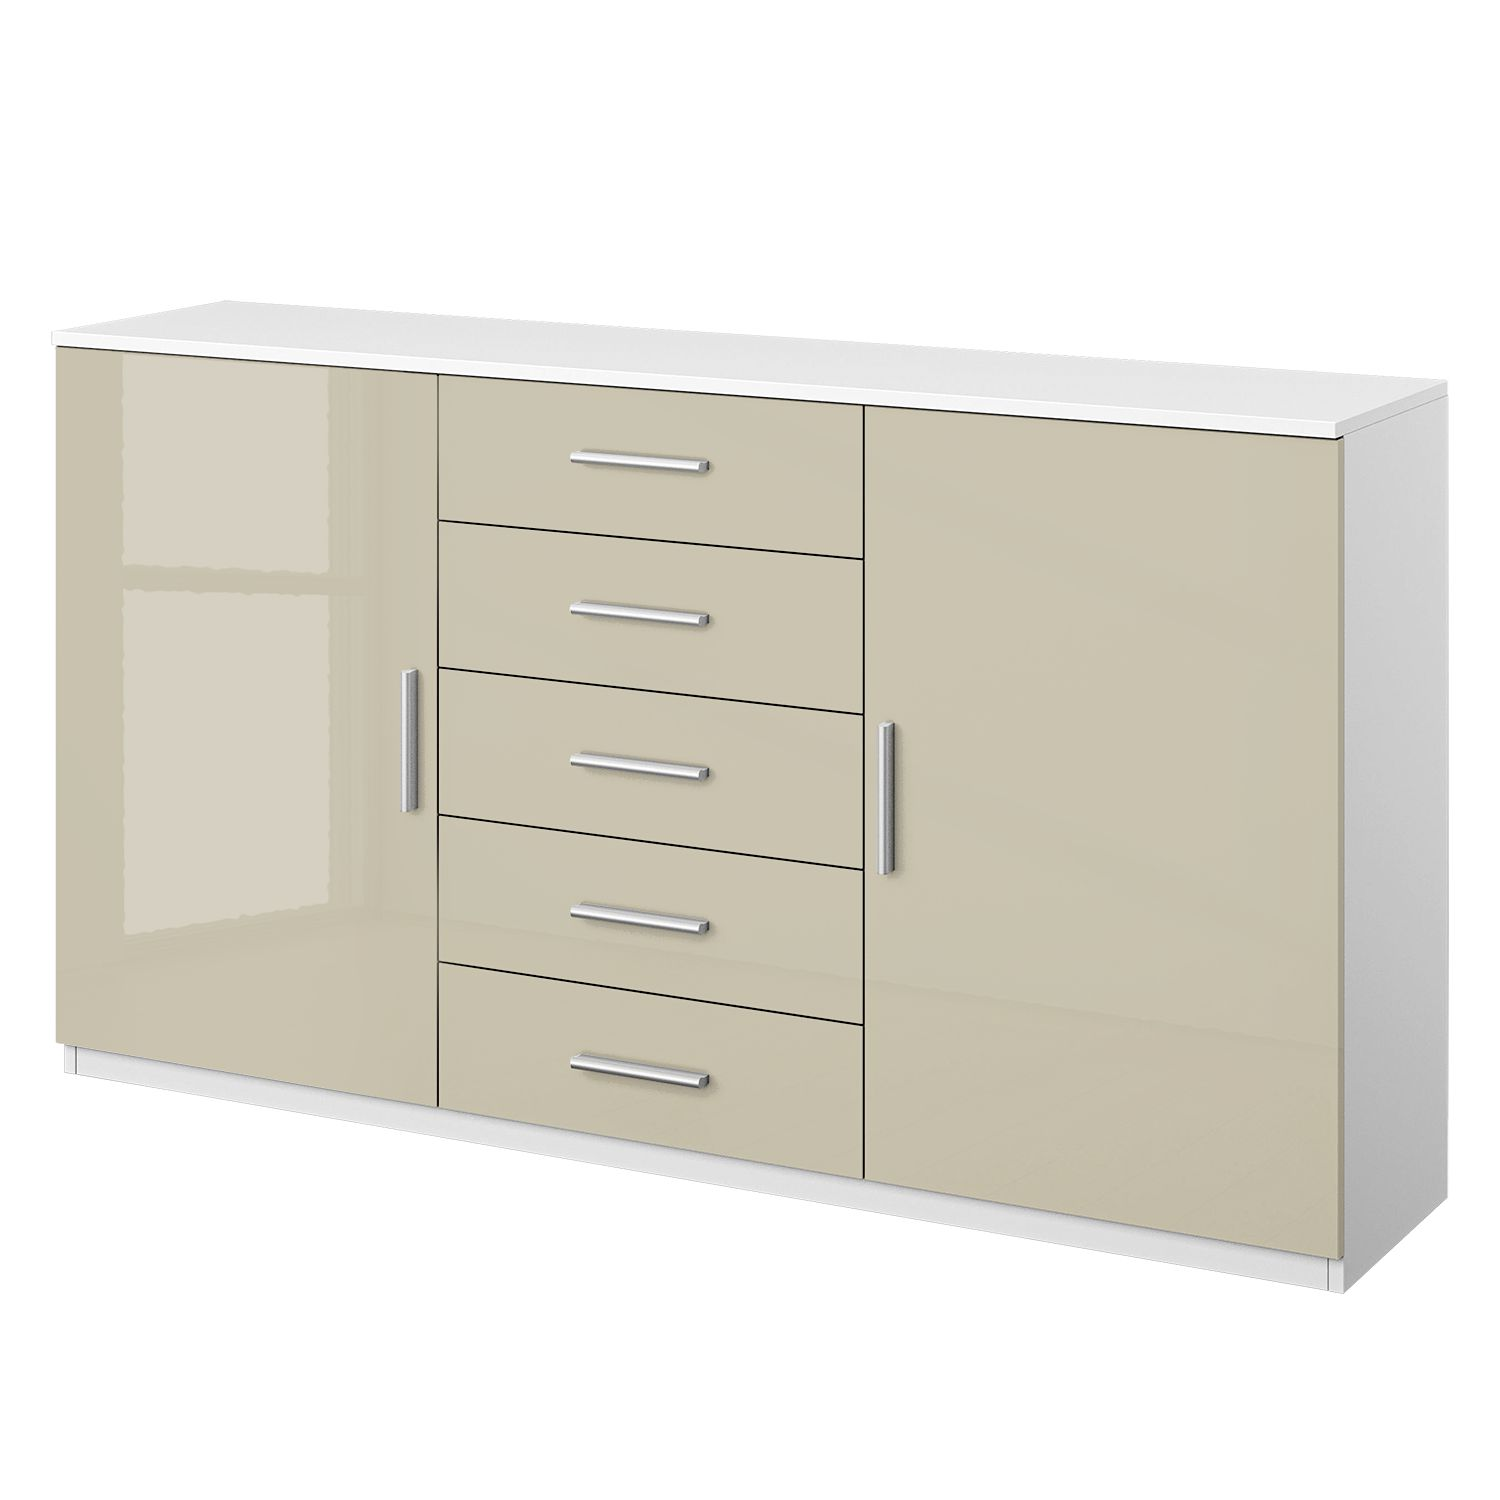 Commode Celle III - Blanc alpin / Gris sable brillant, Rauch Packs